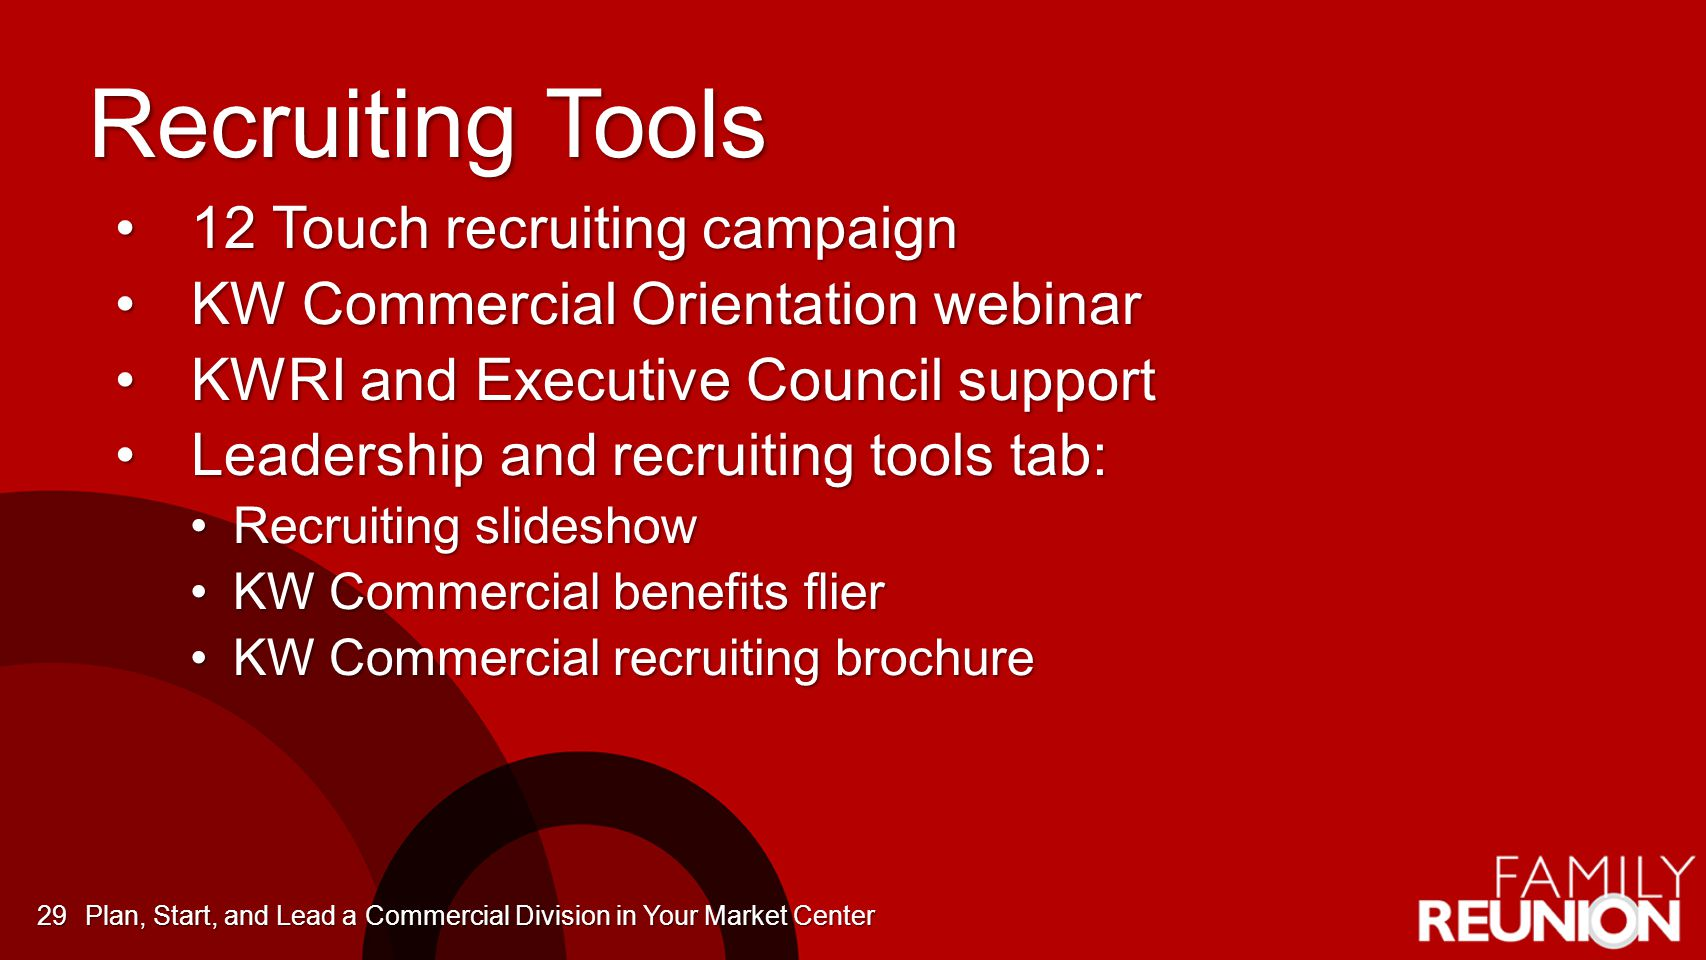 Recruiting Tools 12 Touch recruiting campaign12 Touch recruiting campaign KW Commercial Orientation webinarKW Commercial Orientation webinar KWRI and